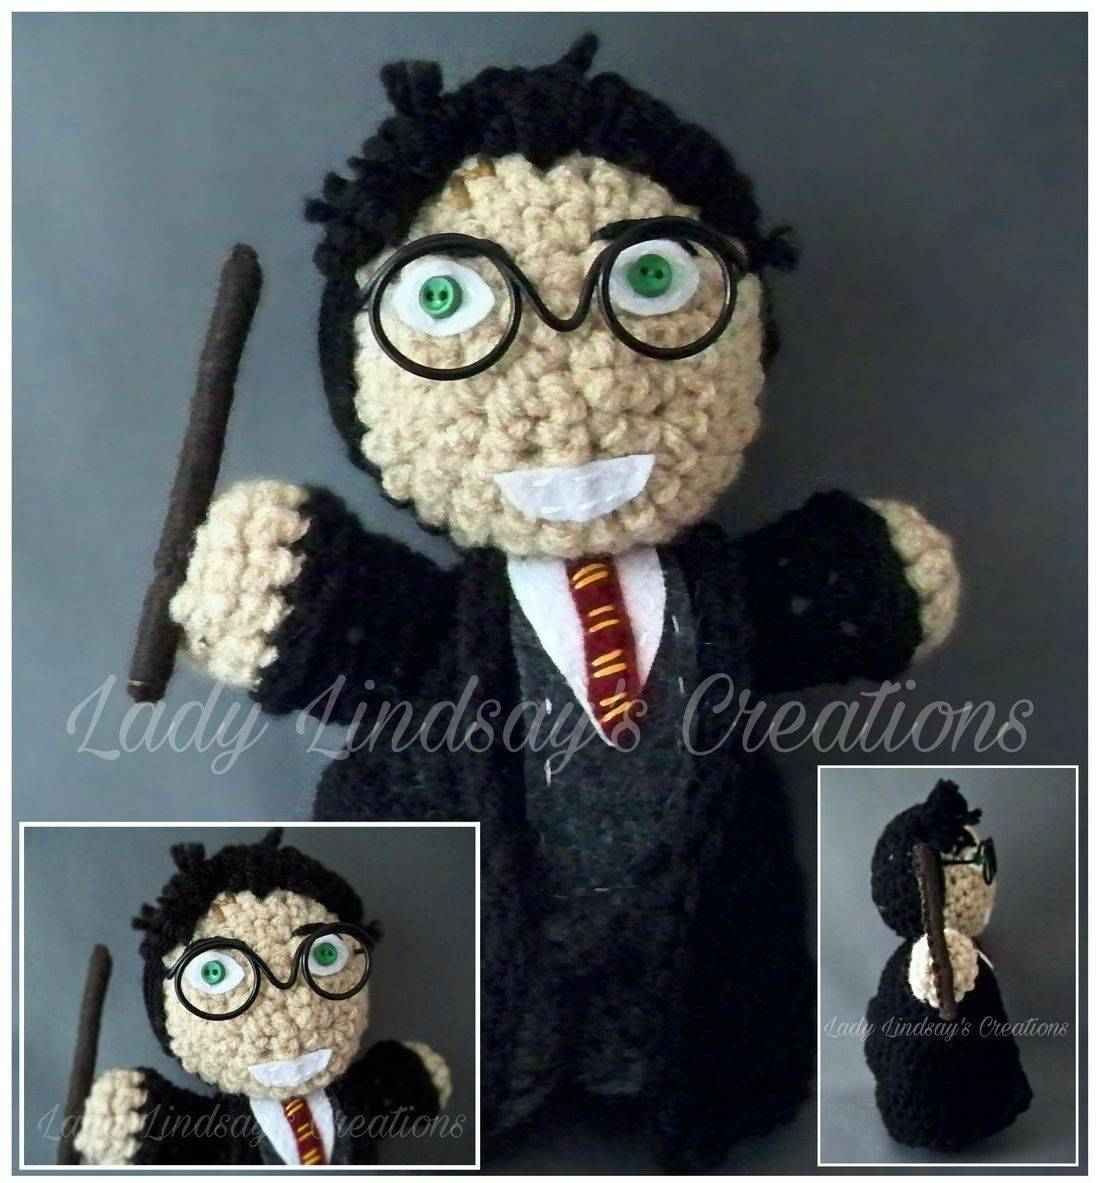 Harry Potter,  The Boy Who Lived, Witch, Wizard, Amigurumi, Plush, Crochet, handmade, Shop Small, Etsy, nerd, geek, kawaii, otaku, anime, fantasy, Magic, handmade